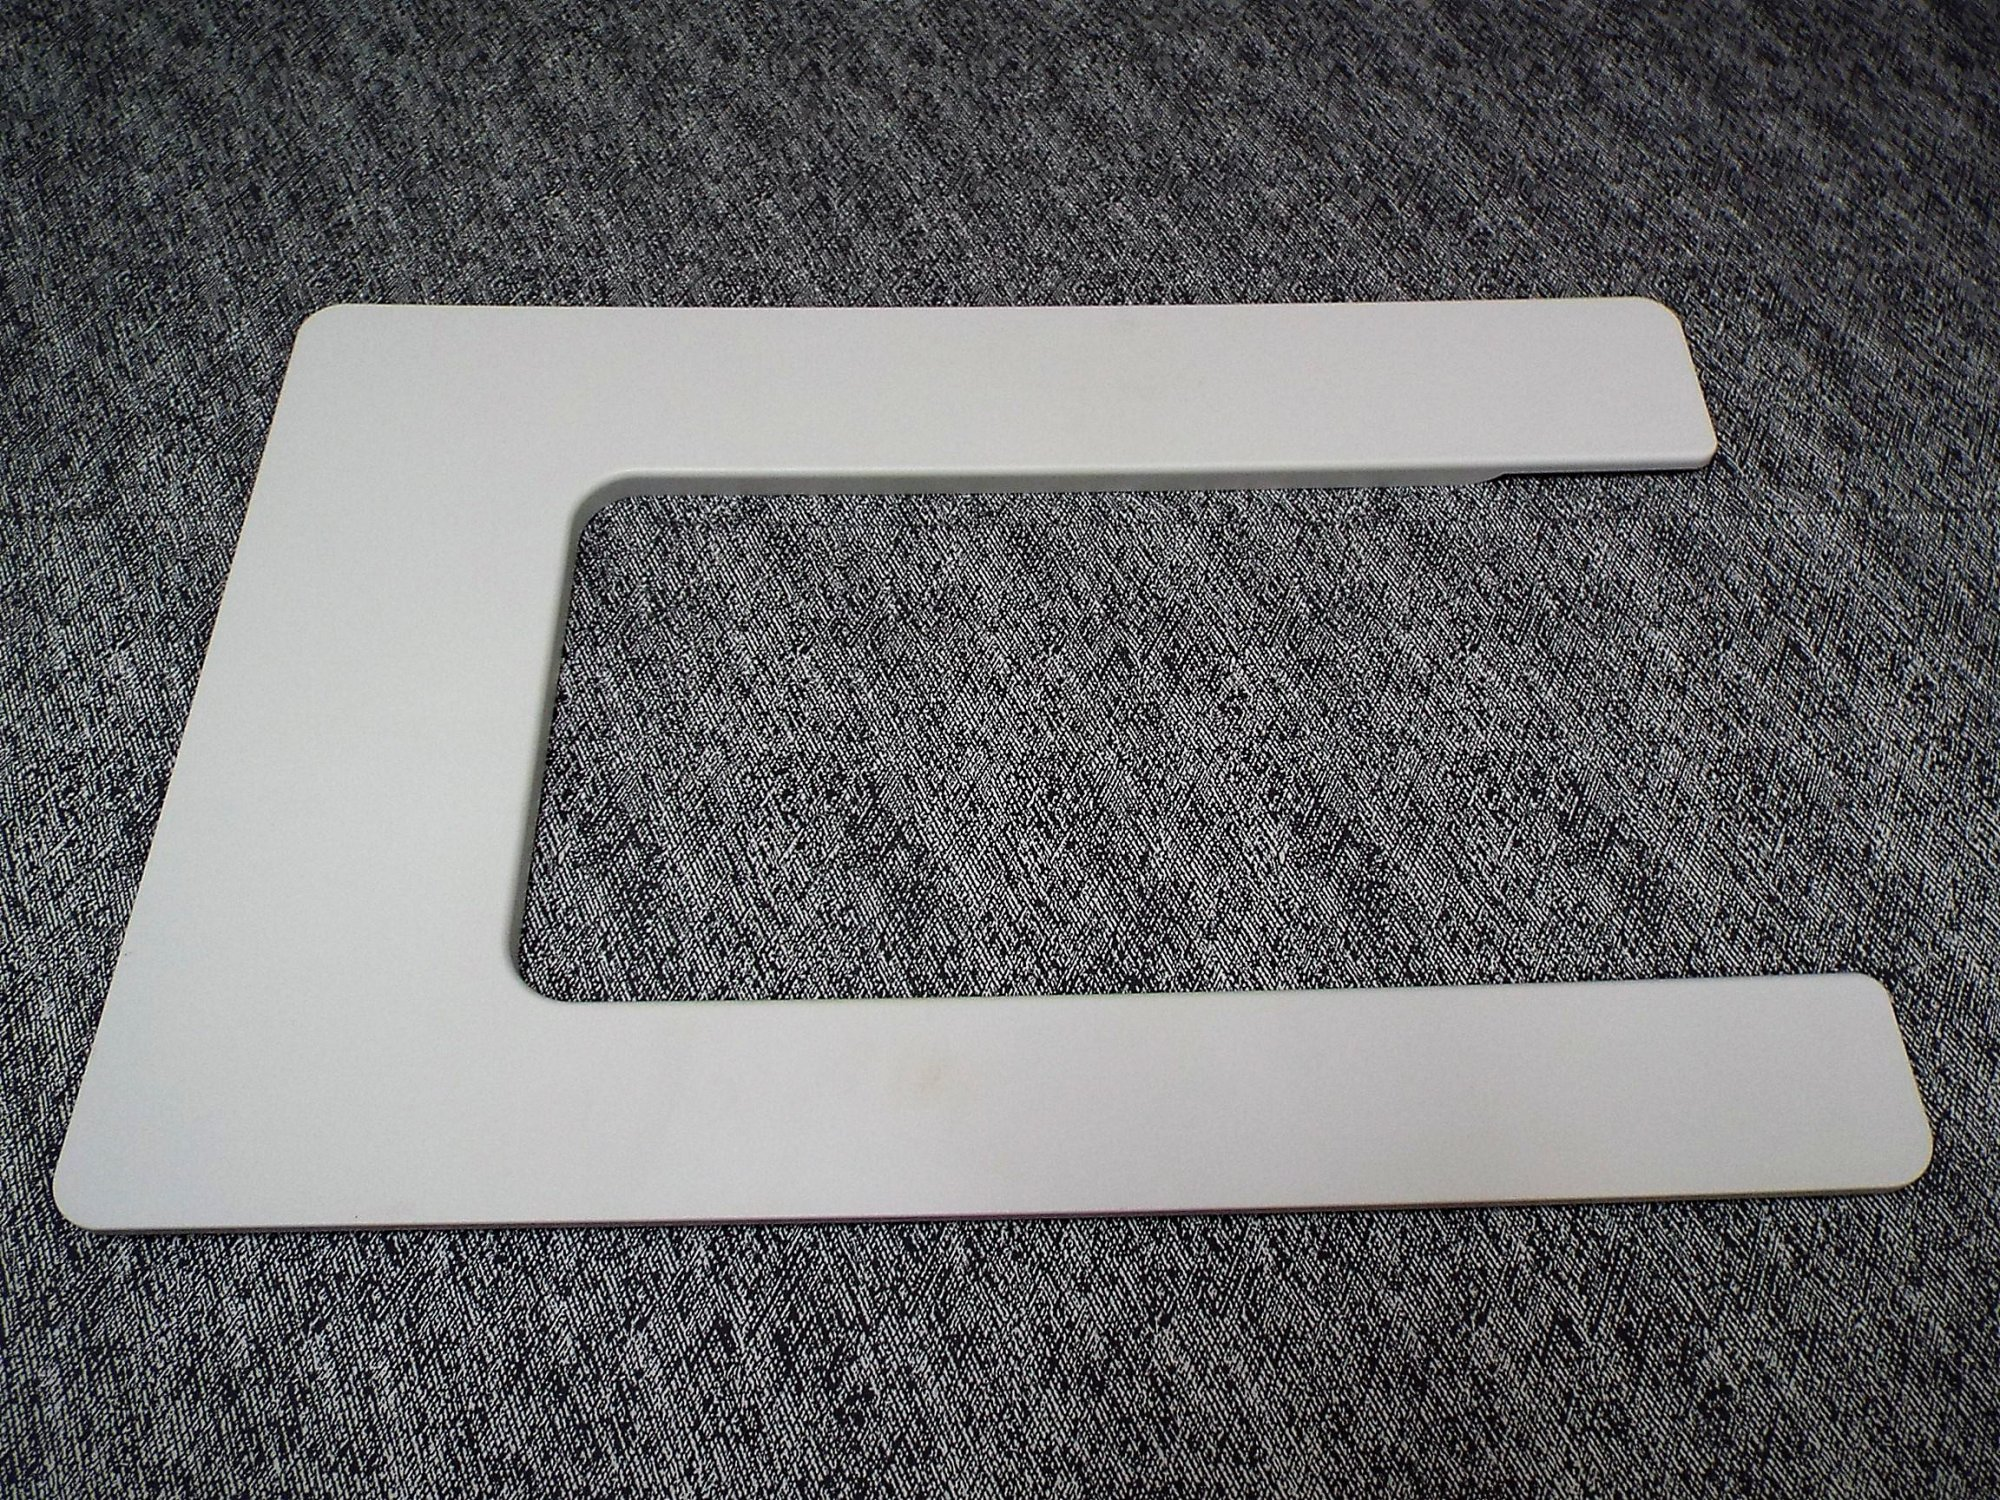 Janome Insert Plate H